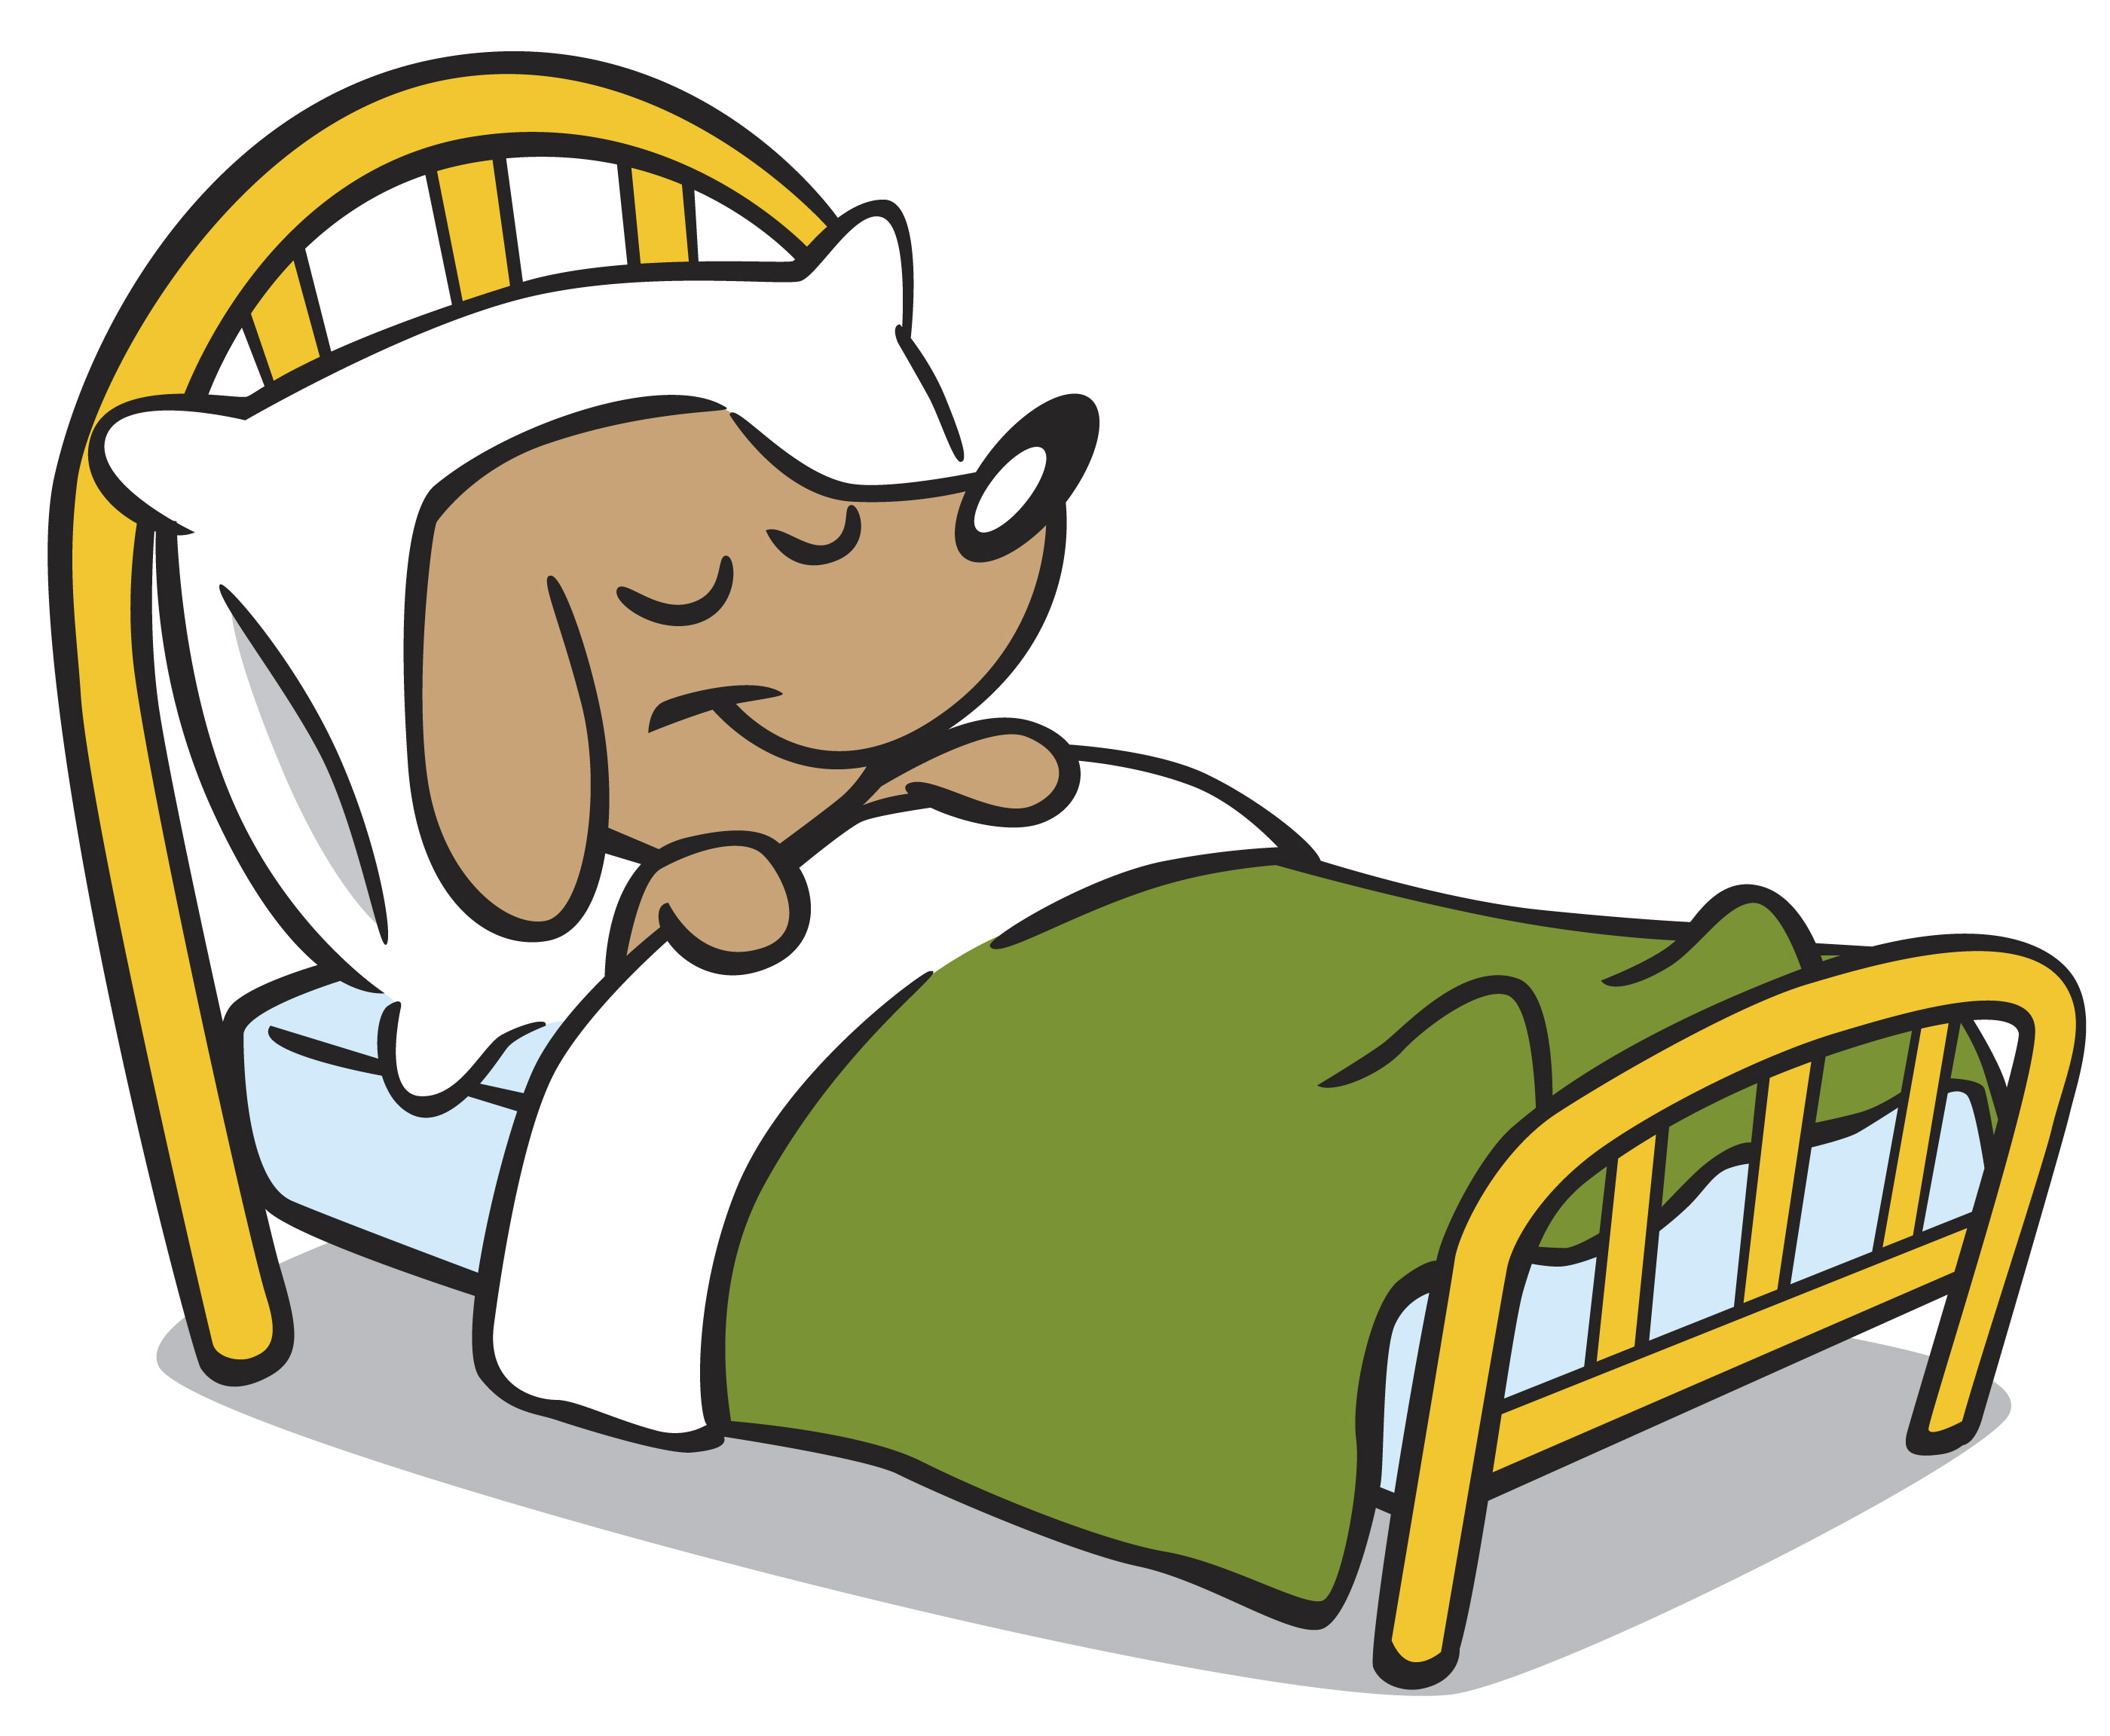 7 clipart kid. Going to sleep free